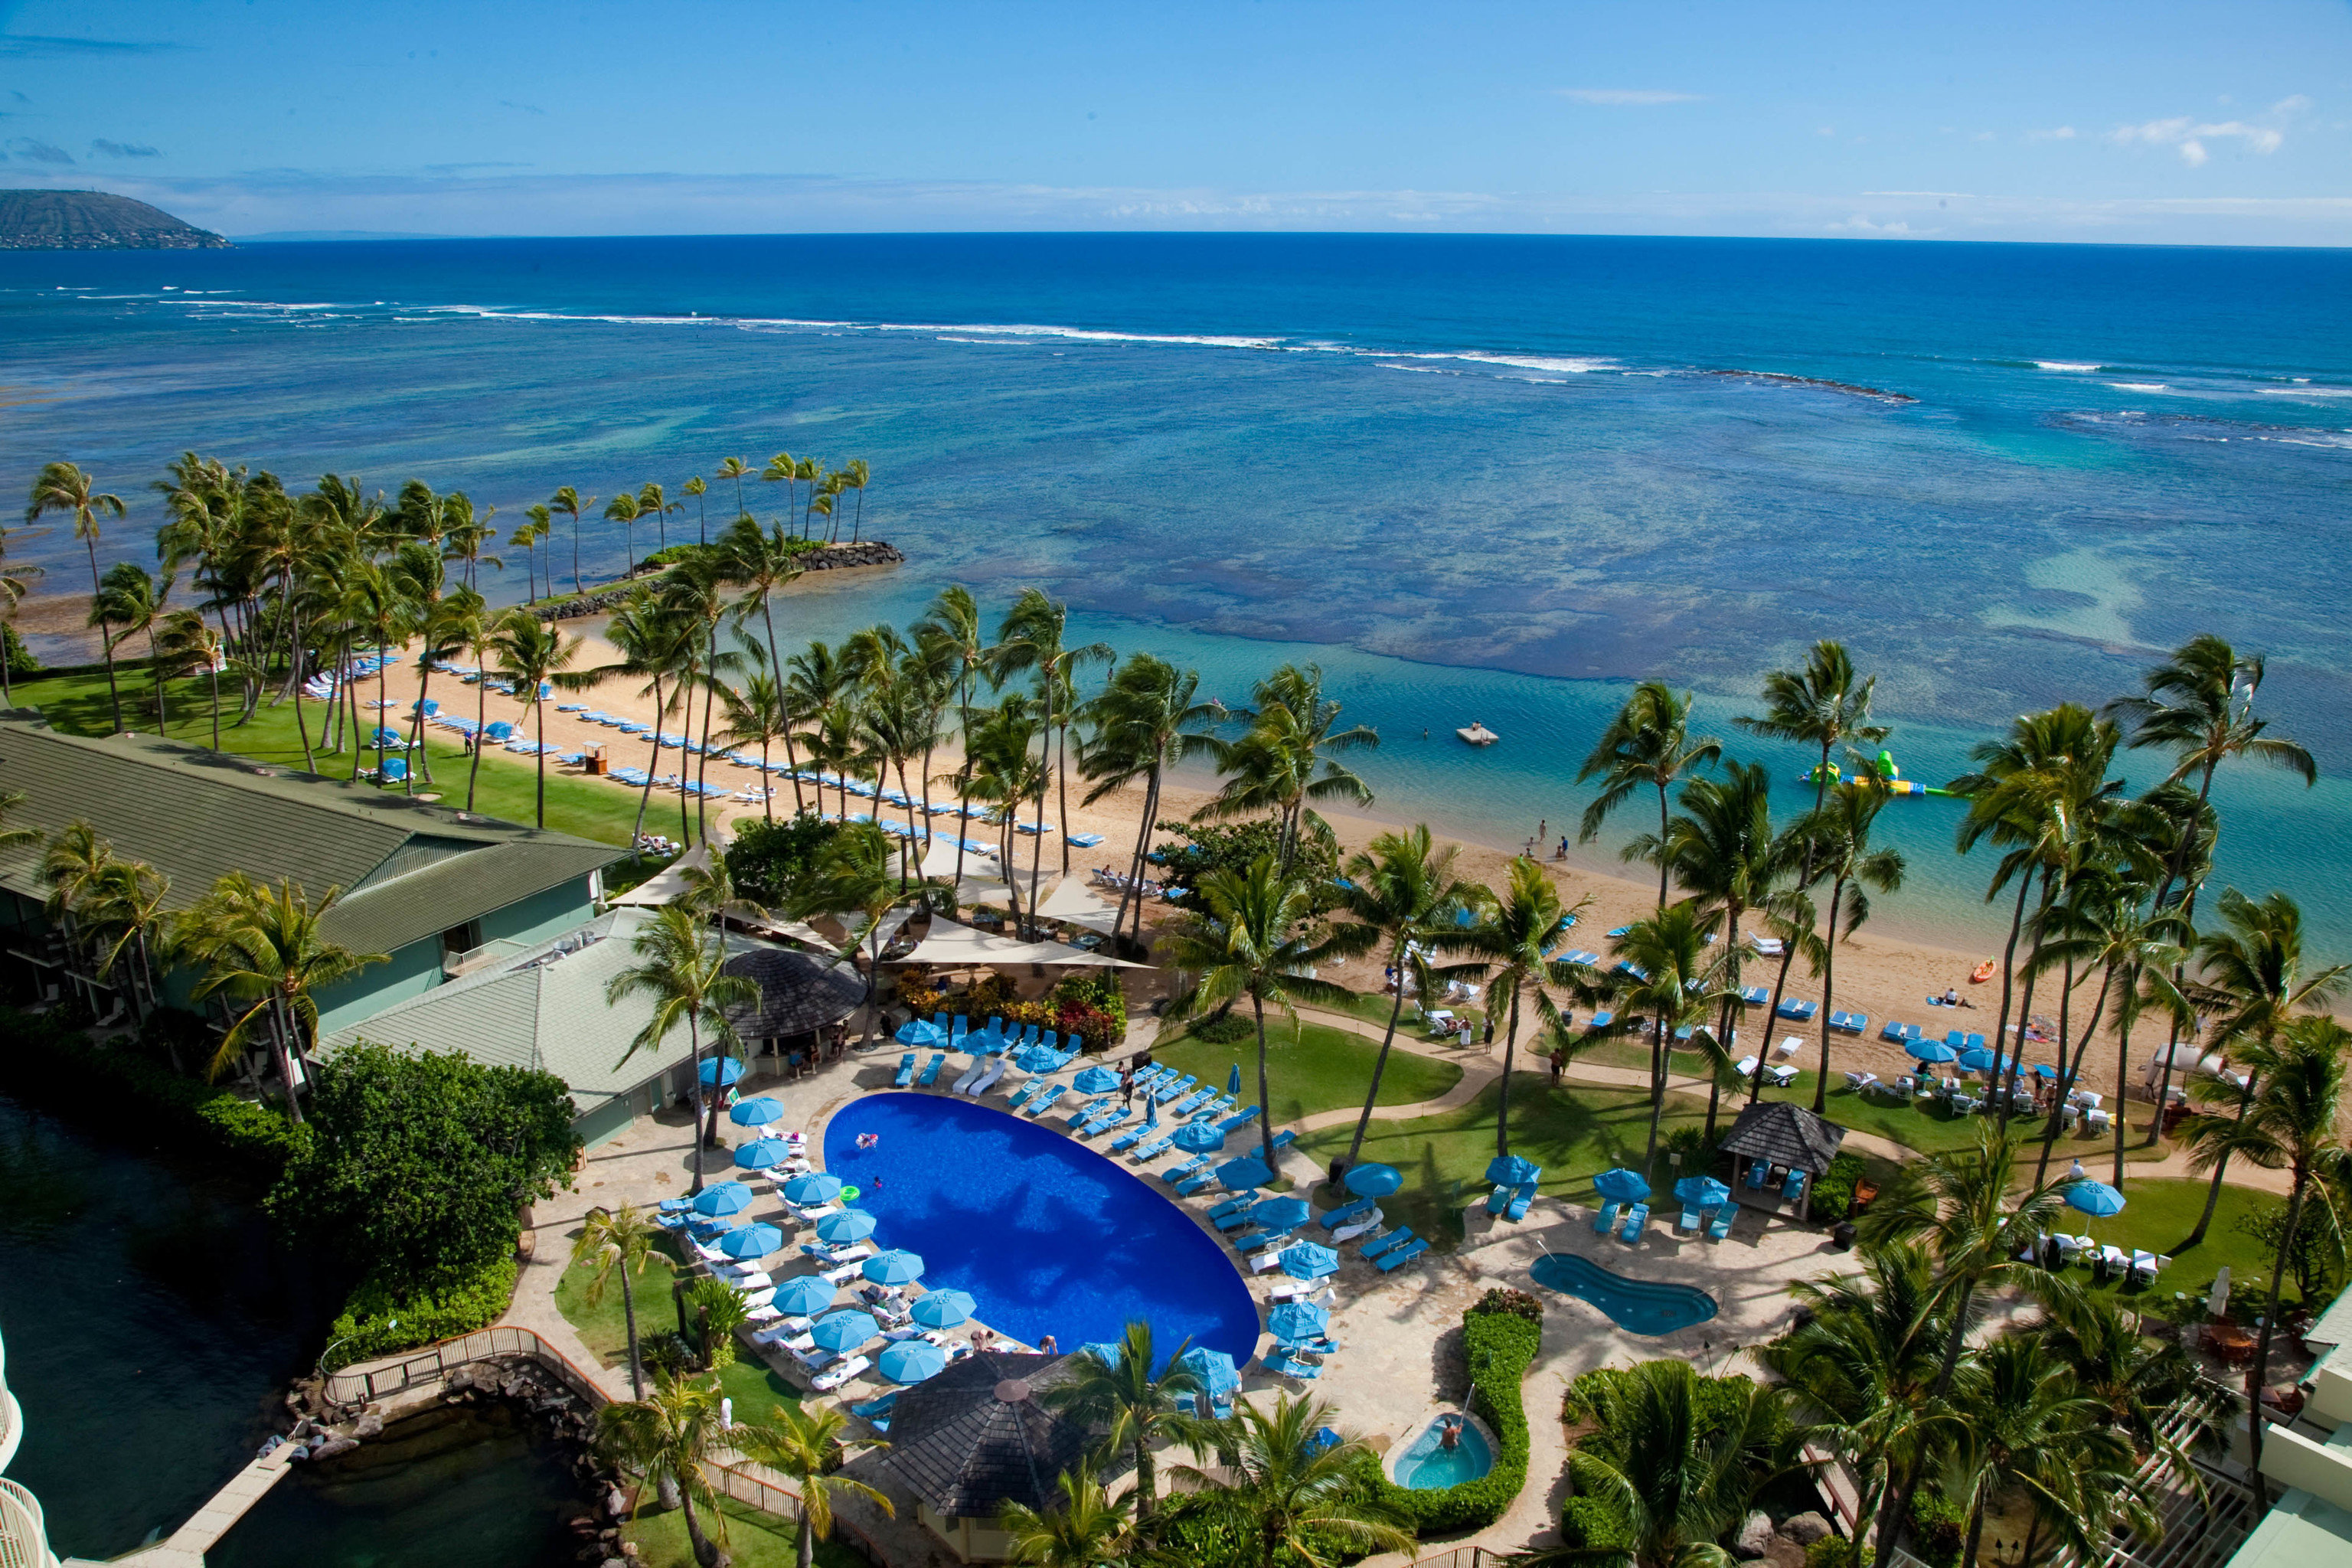 Boutique Hotels Hawaii Honolulu Hotels Resort resort town leisure swimming pool tourism tropics palm tree vacation caribbean Sea arecales water bay aerial photography real estate Lagoon sky estate Coast tree Ocean hotel